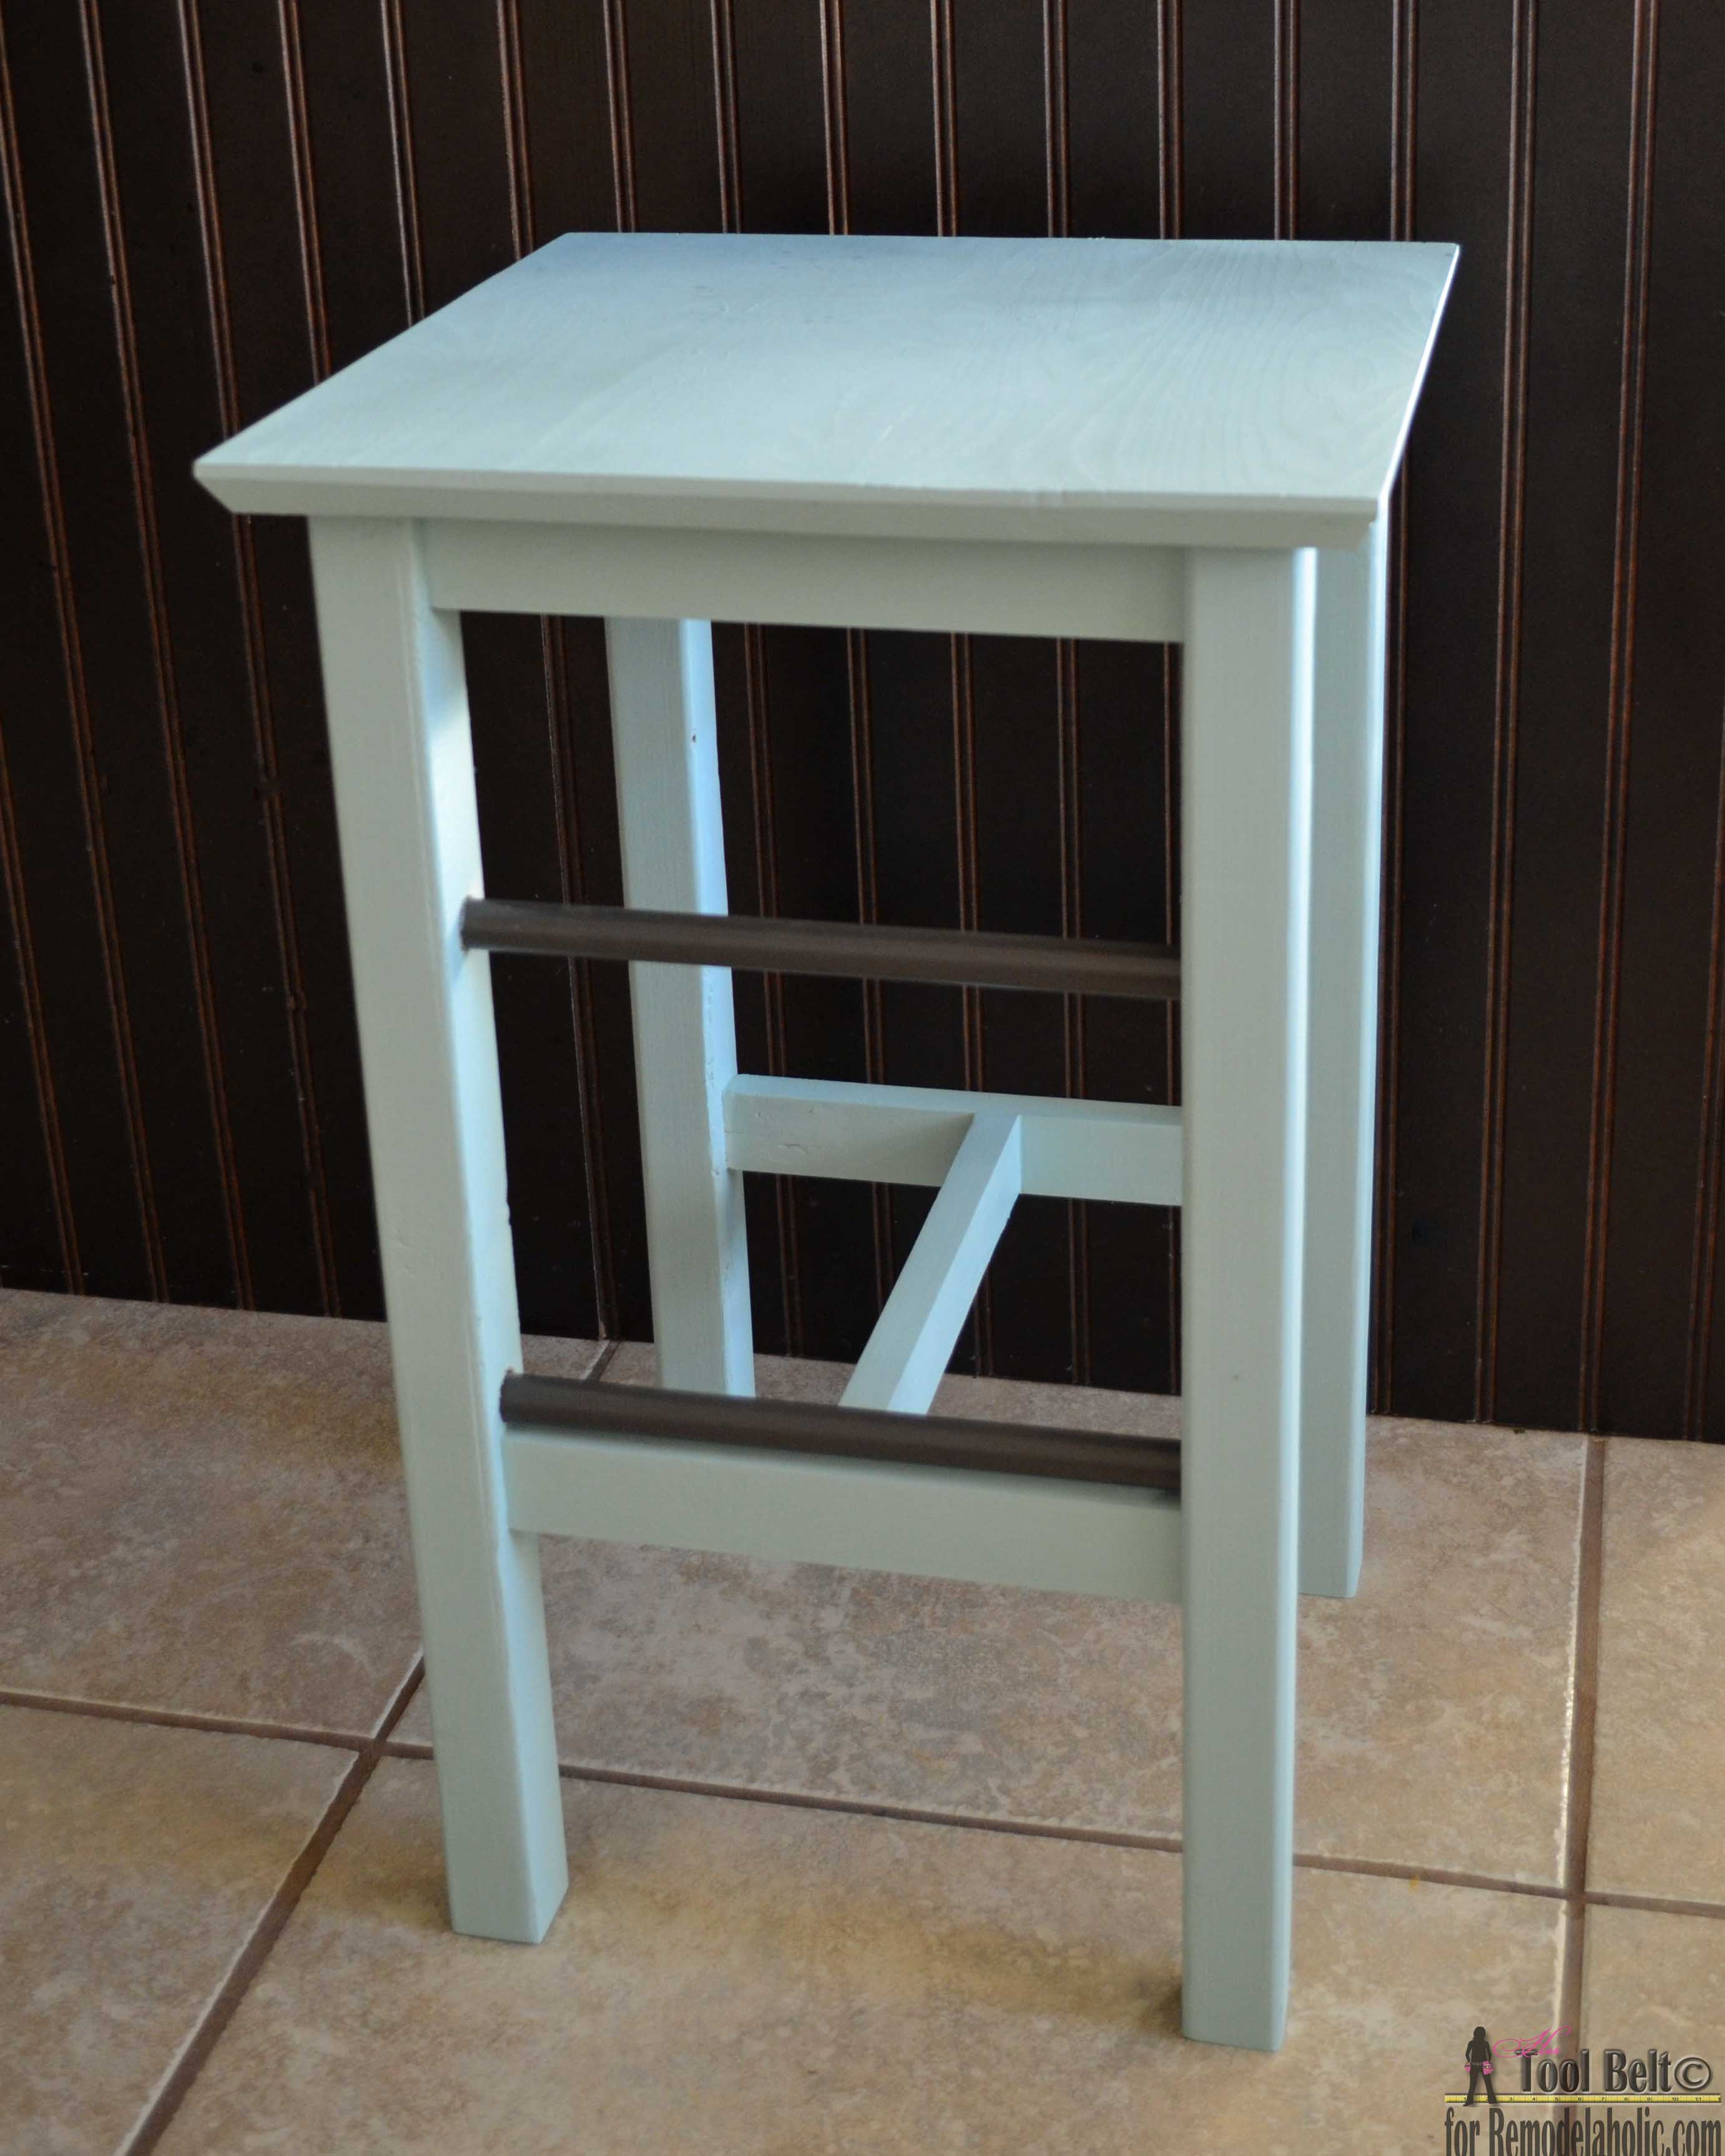 Remodelaholic | DIY Bar Stools with Metal Bar Accents